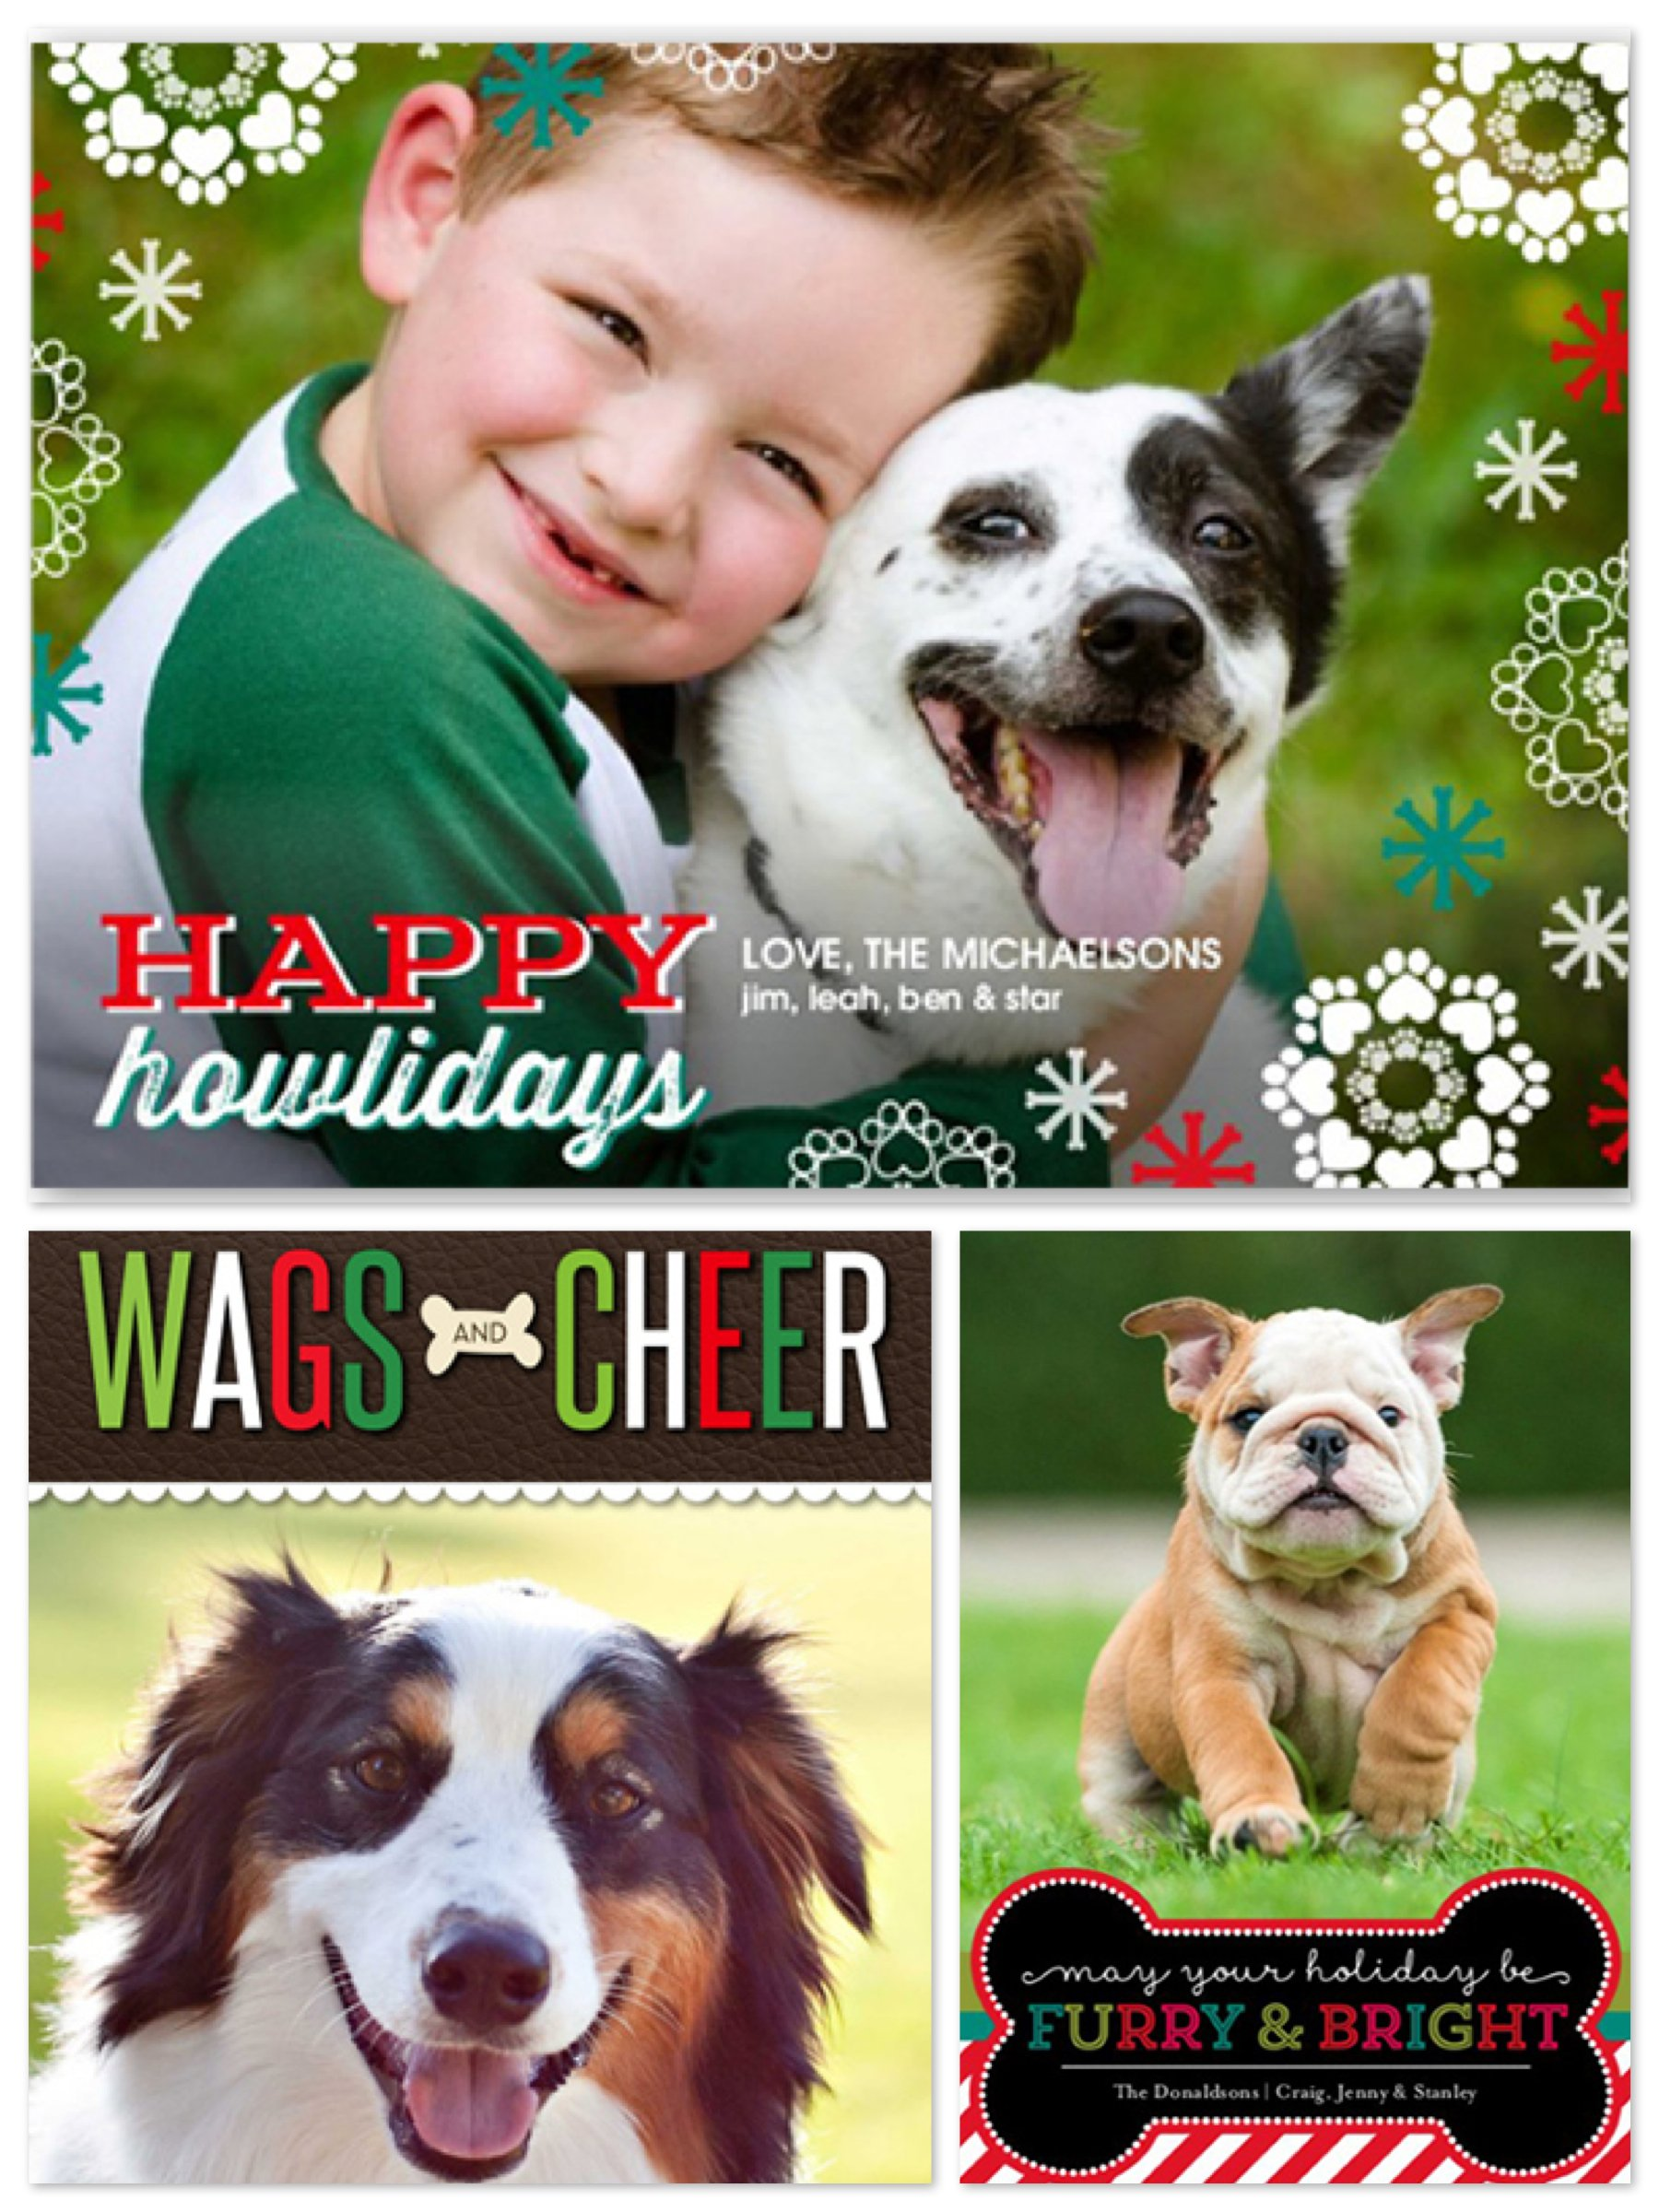 Dog & Pet Holiday Cards